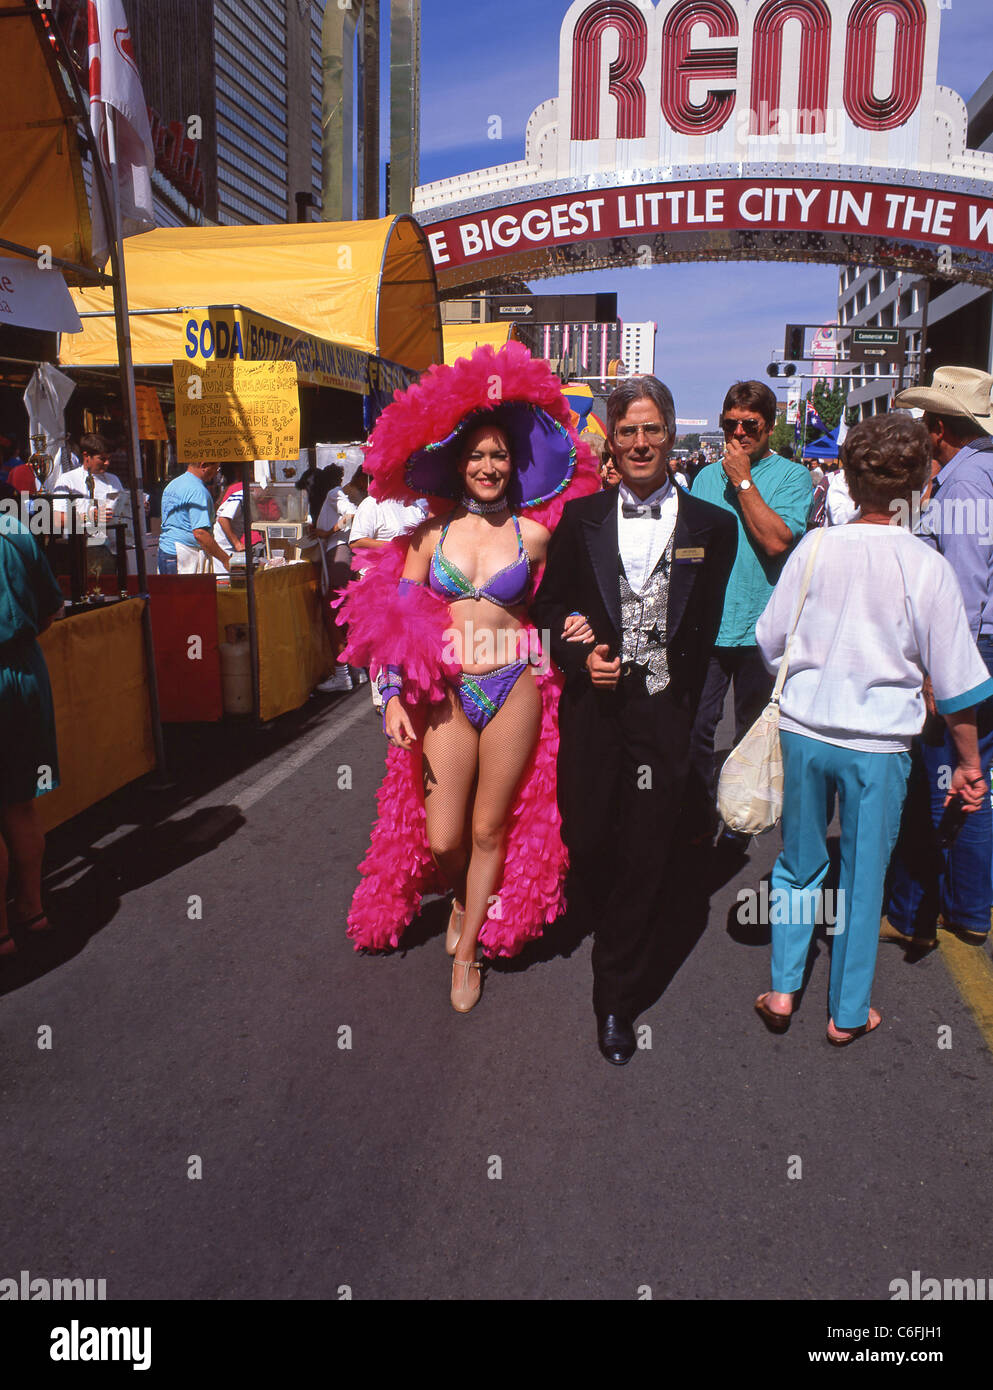 Showgirl in street, Downtown, Reno, Nevada, United States of America - Stock Image